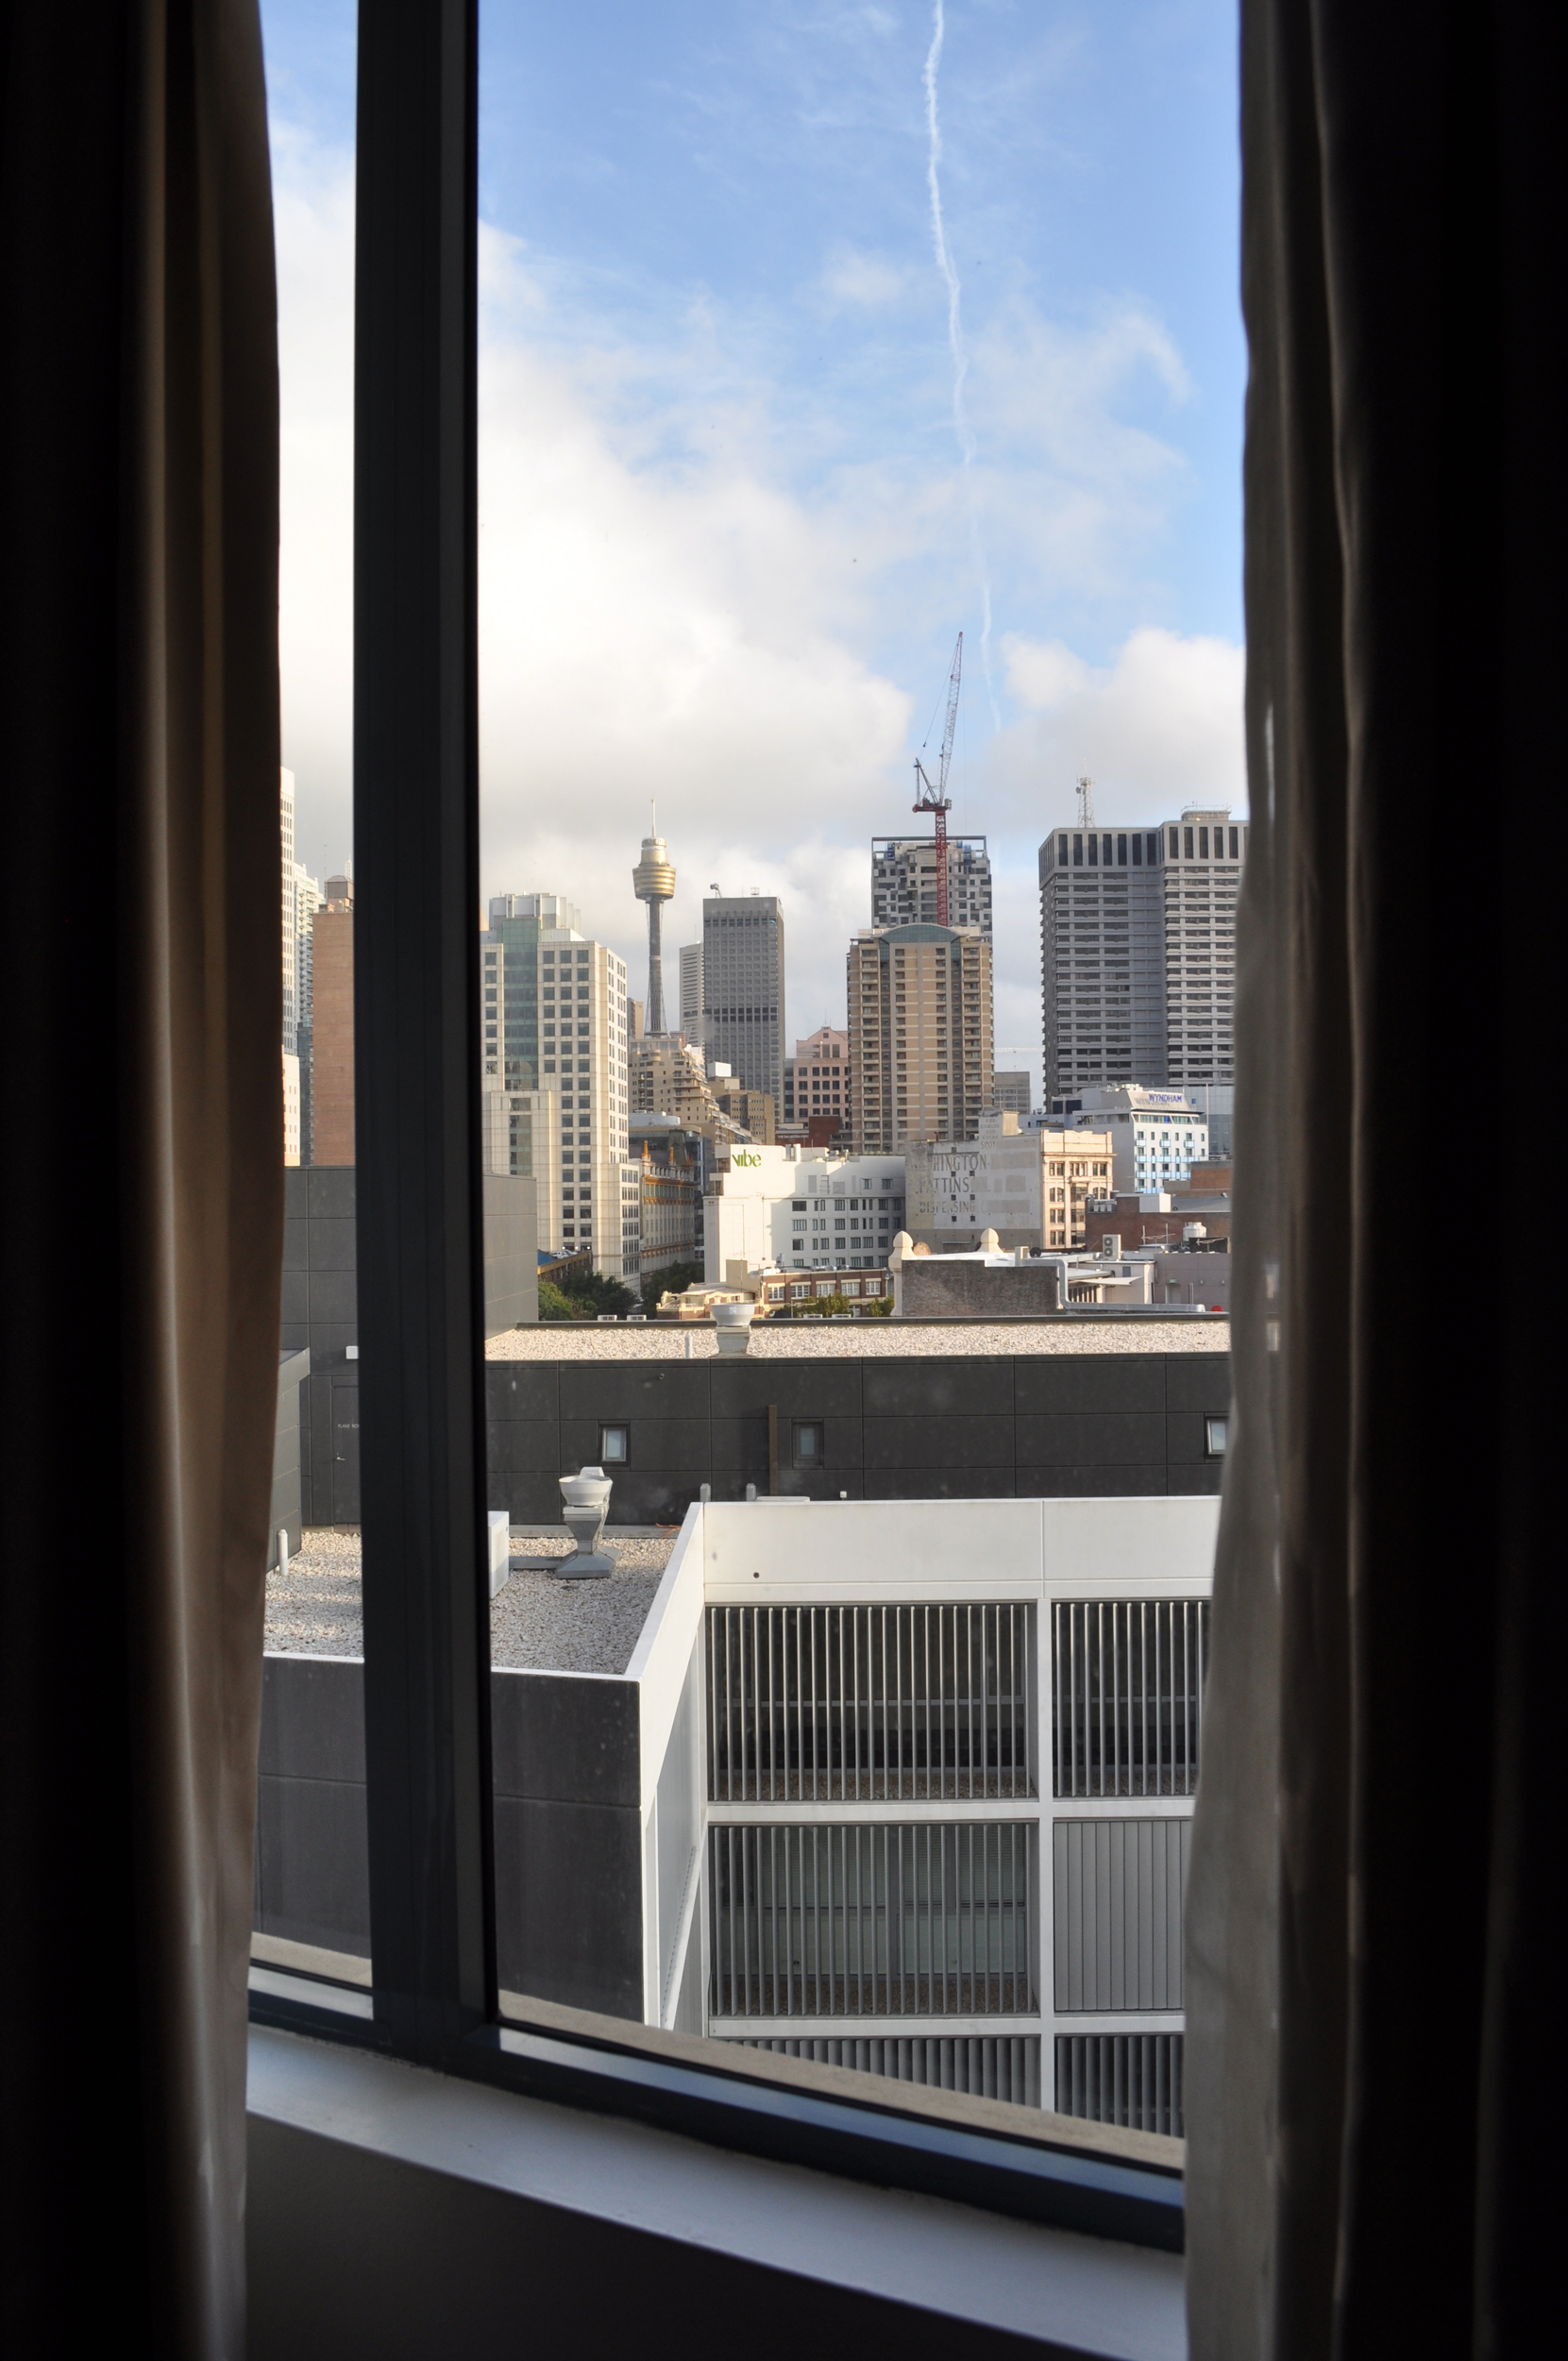 1/28/09-A view of my new city from my 9th floor hotel room at Sebel Surry Hills. Photo by Bobbi Lee Hitchon